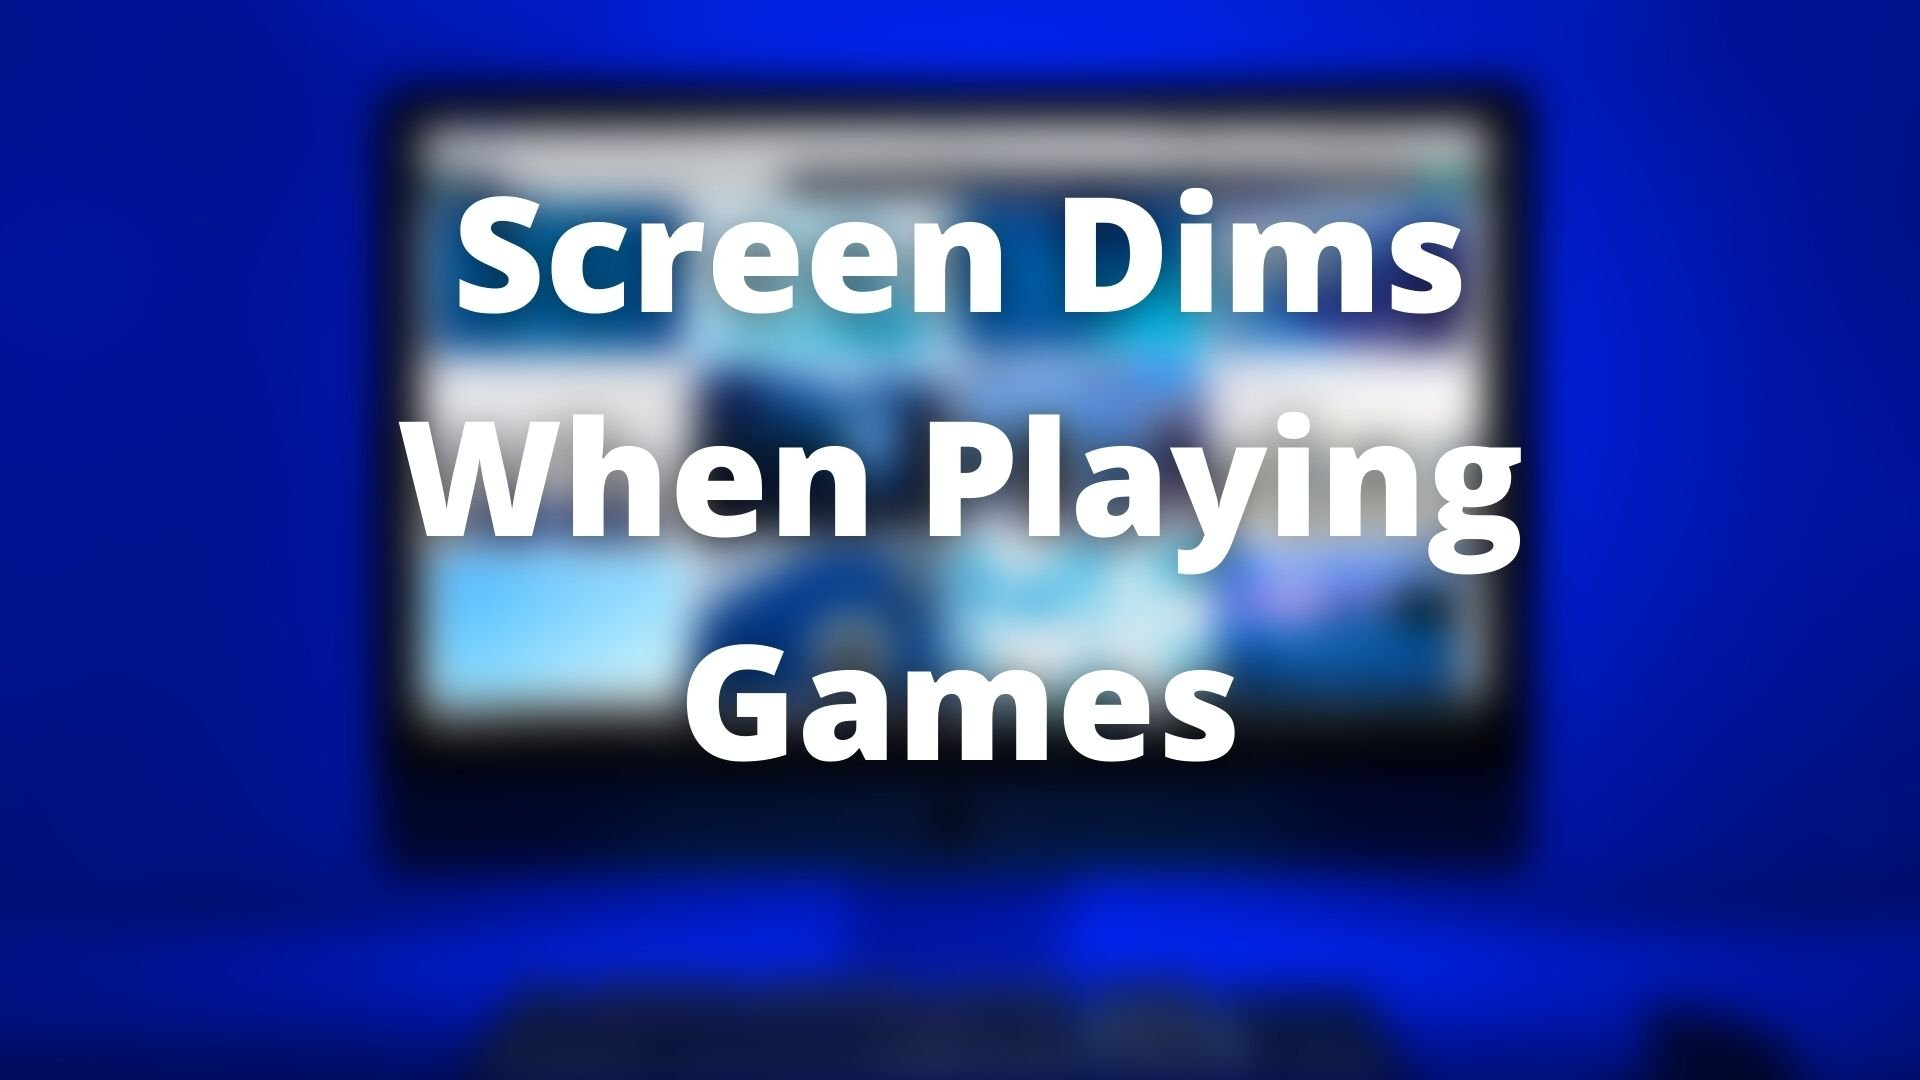 Screen Dims When Playing Games